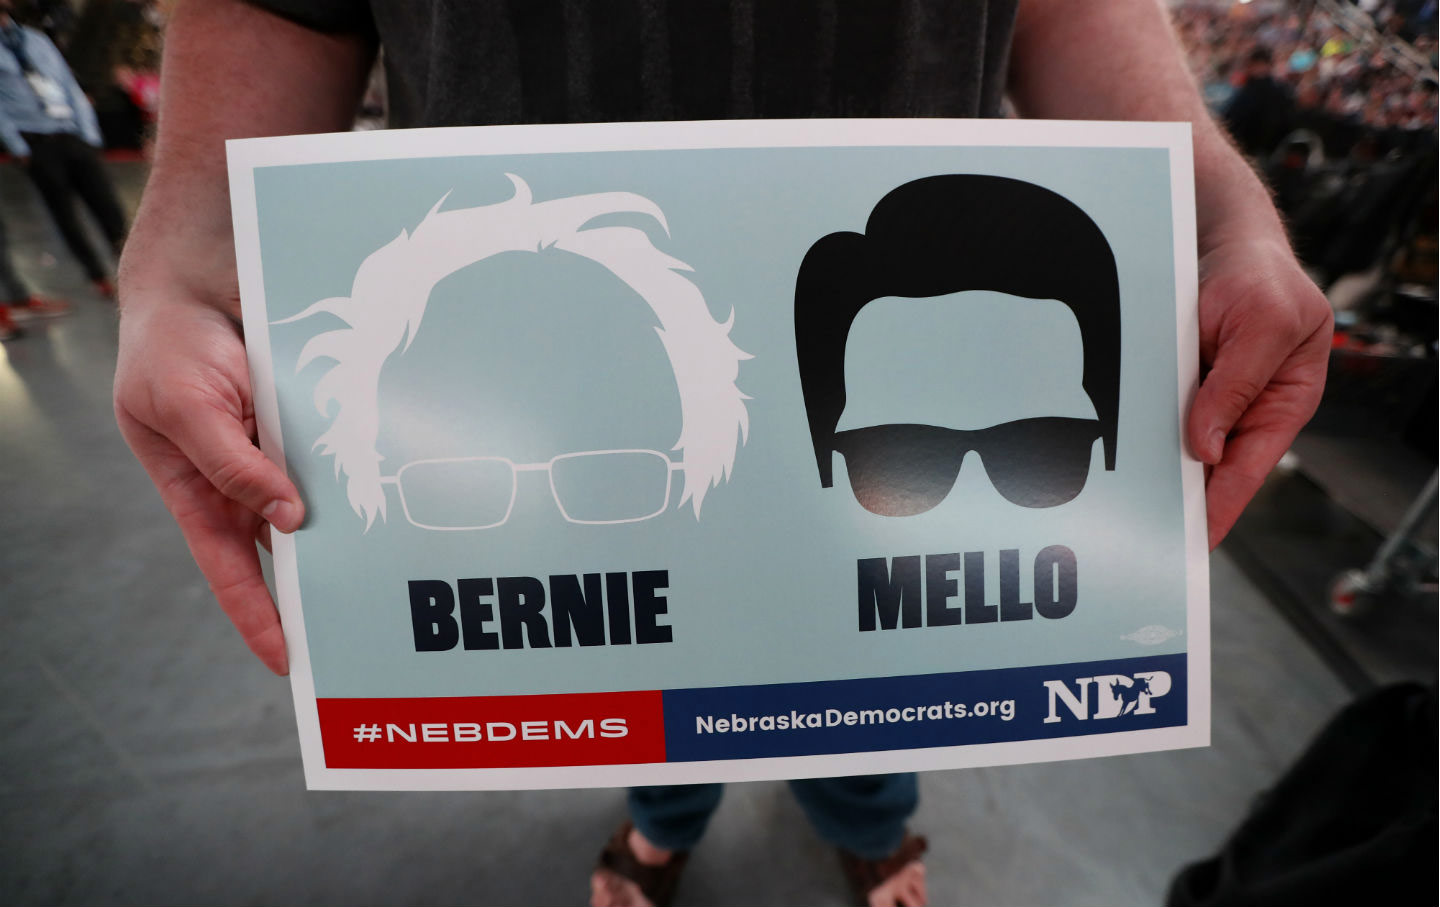 Mello Sanders DNC Abortion Rights